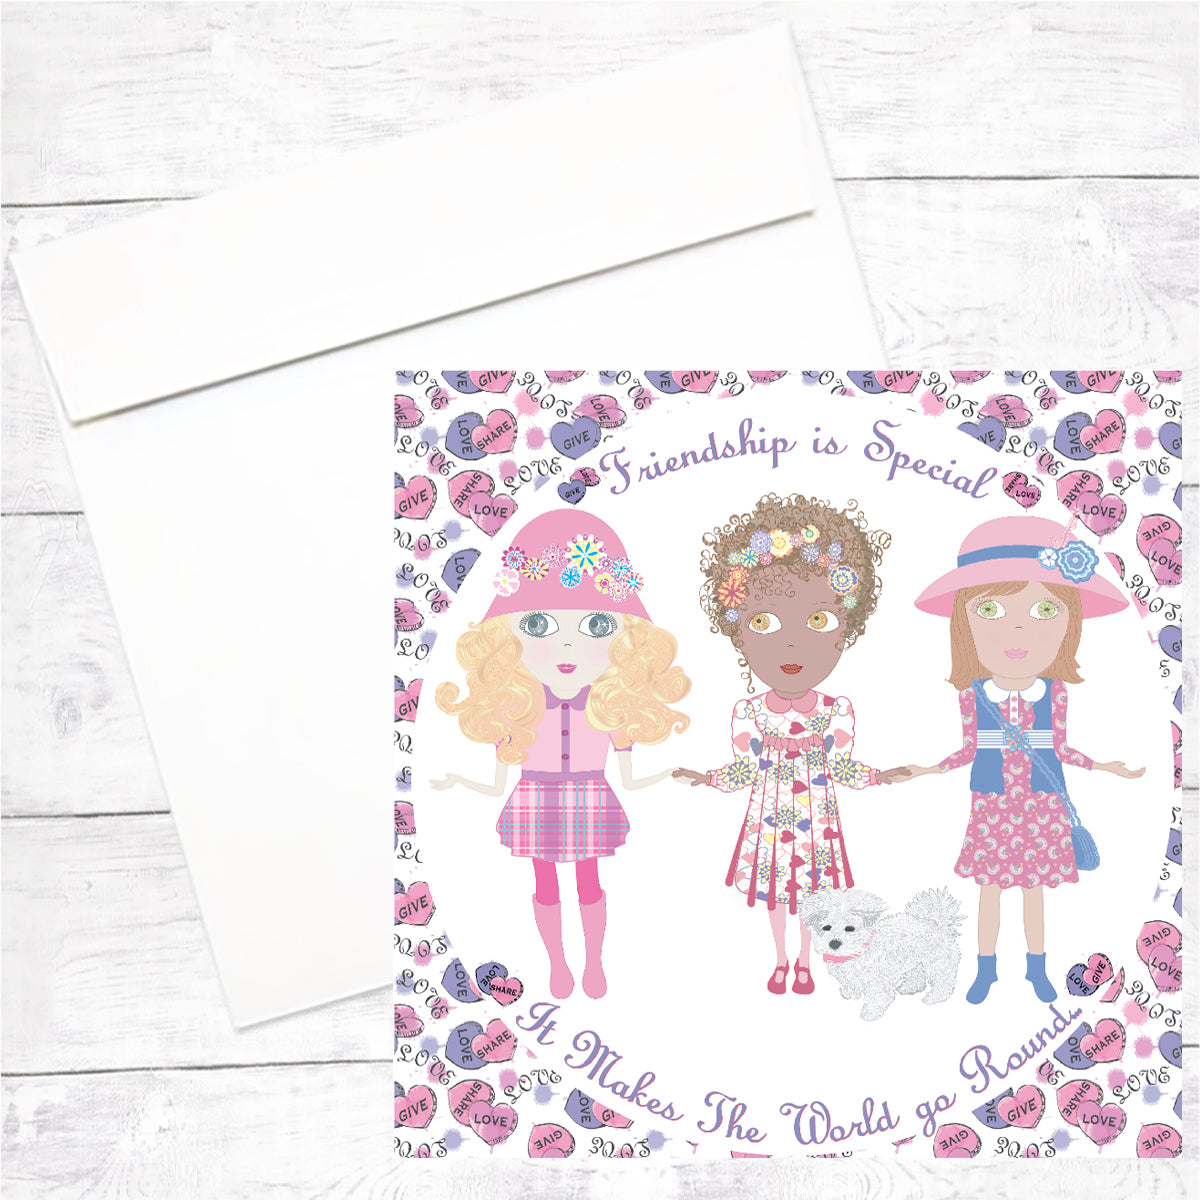 Flower Girls Greeting Cards: Friendship is Special